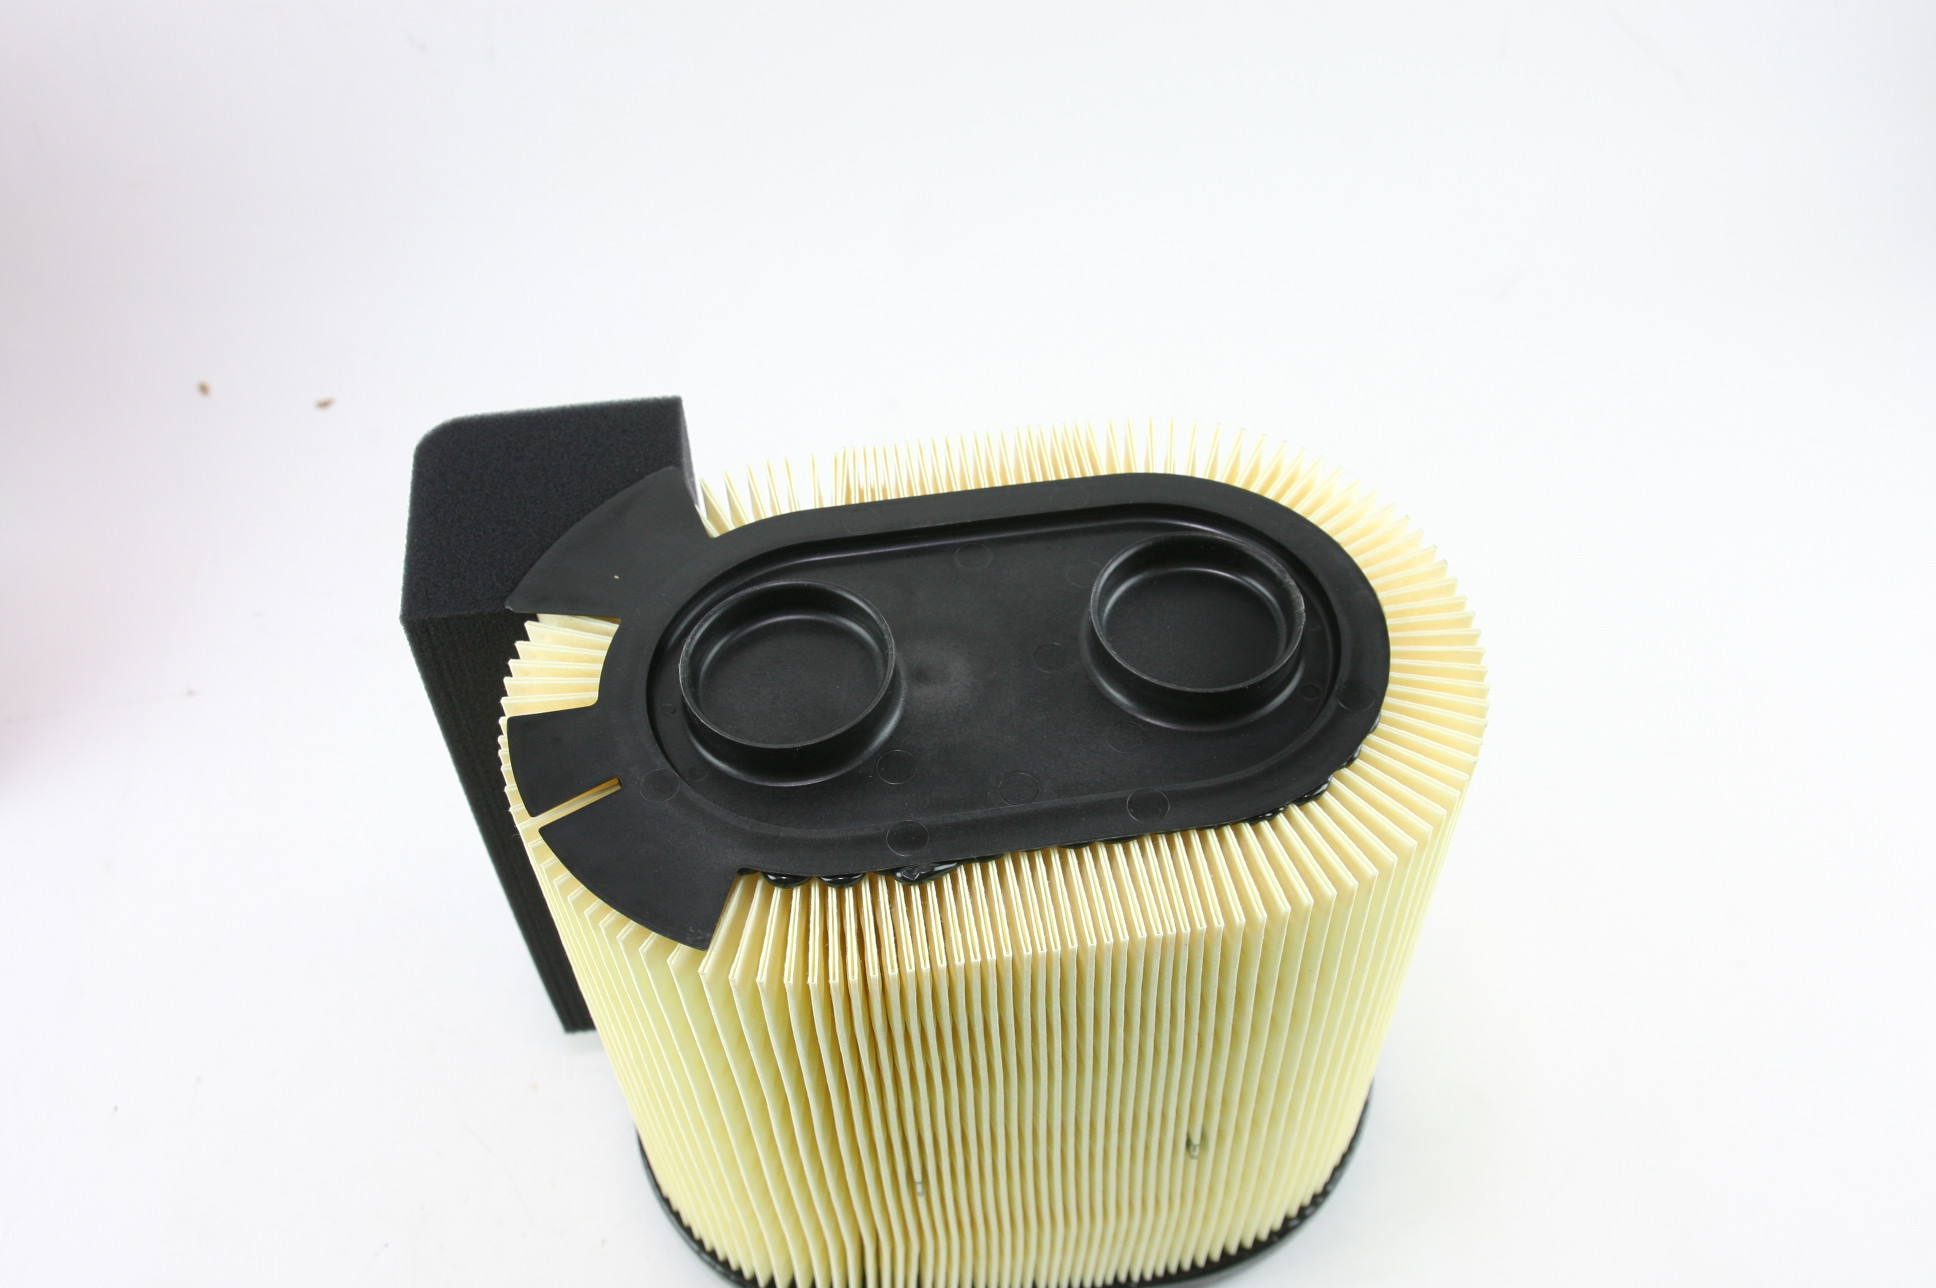 New OEM 3 Pack Motorcraft FA1927 Ford HC3Z9601A Powerstroke Diesel Air Filter - image 4